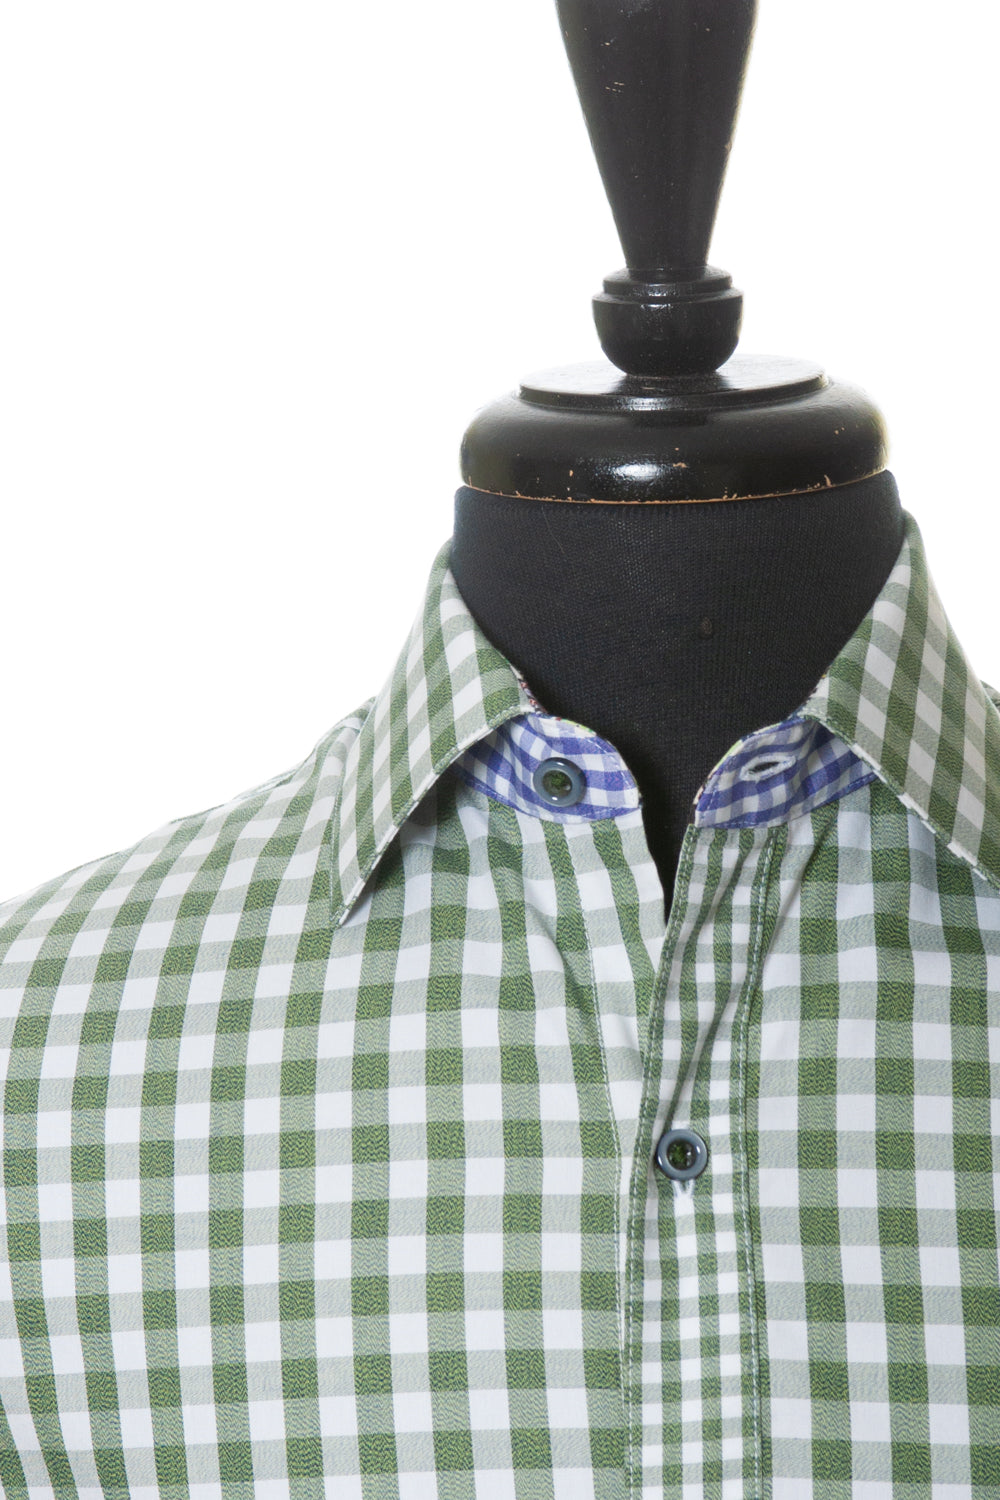 Robert Graham Bold Green Check Cotton Sport Shirt